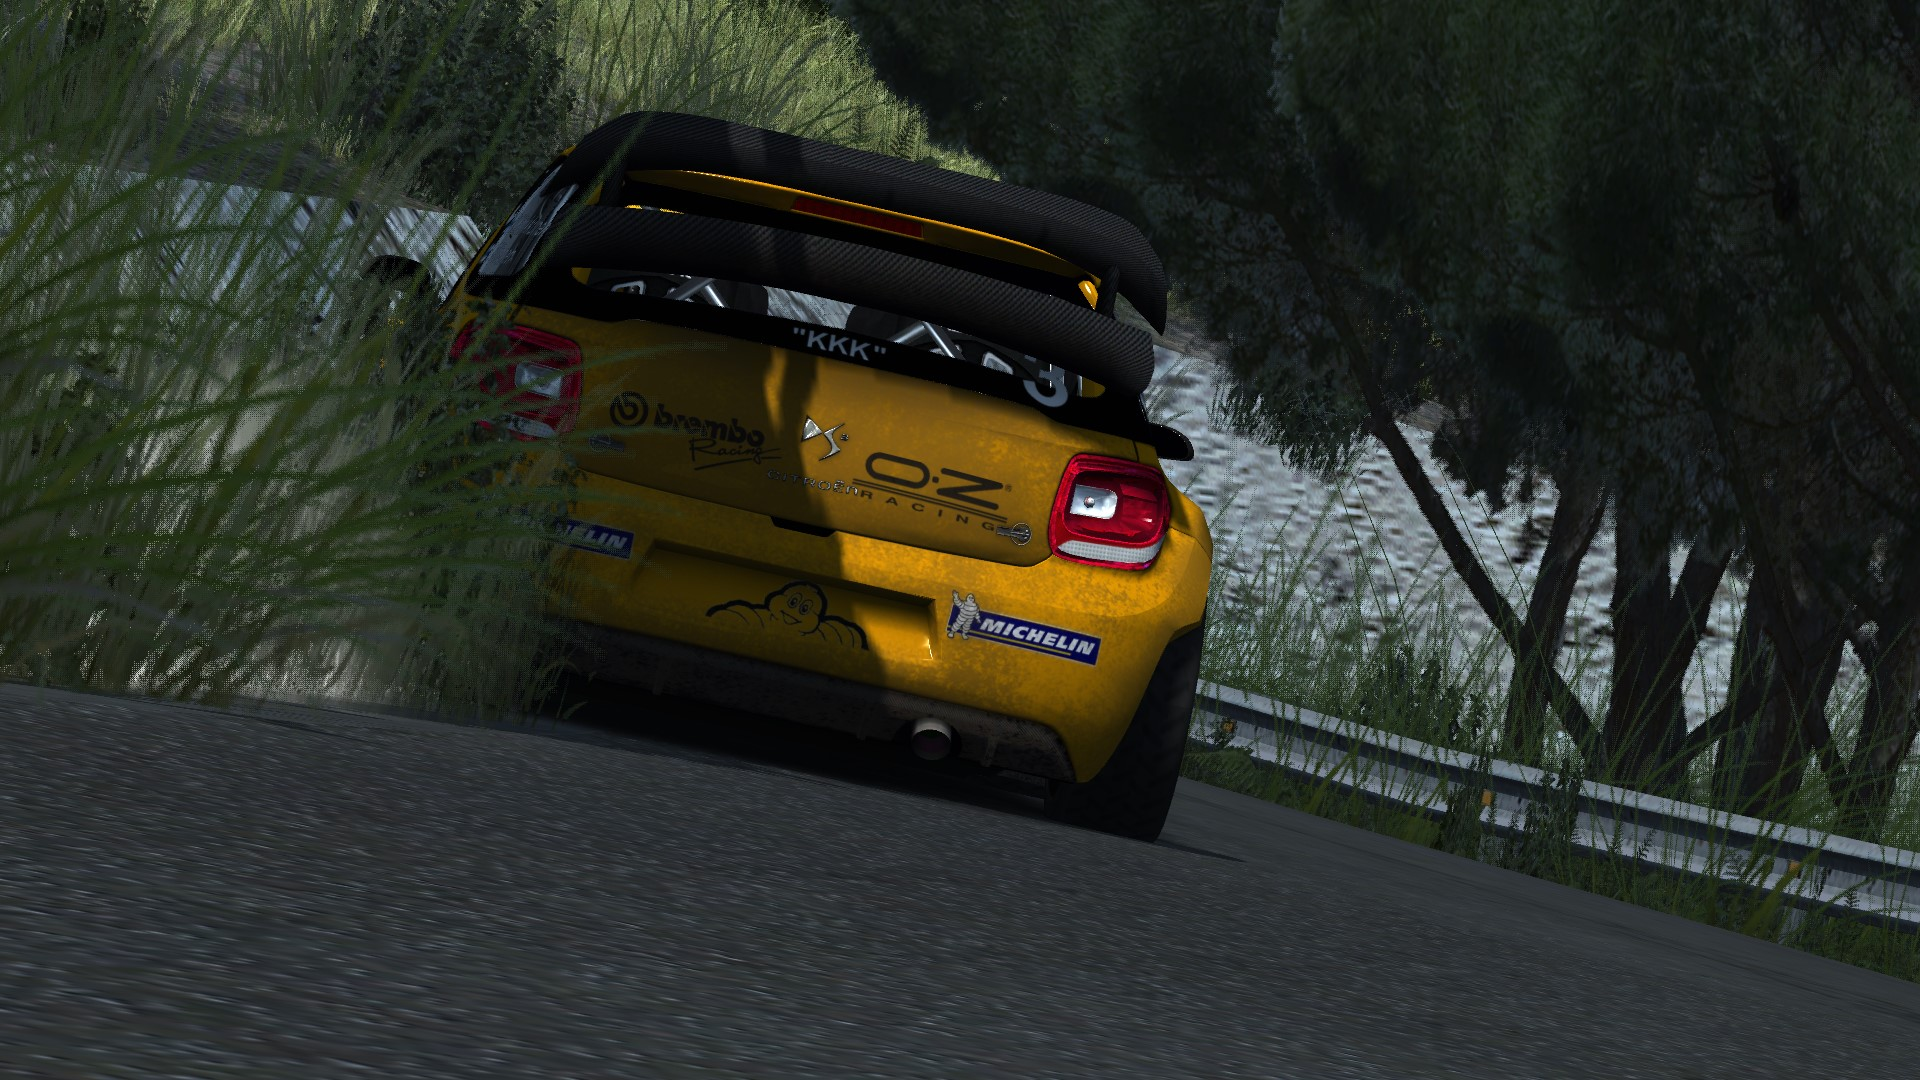 Screenshot_ds3_wrc_2015_hillclimb_moya_20-2-116-21-52-9.jpg